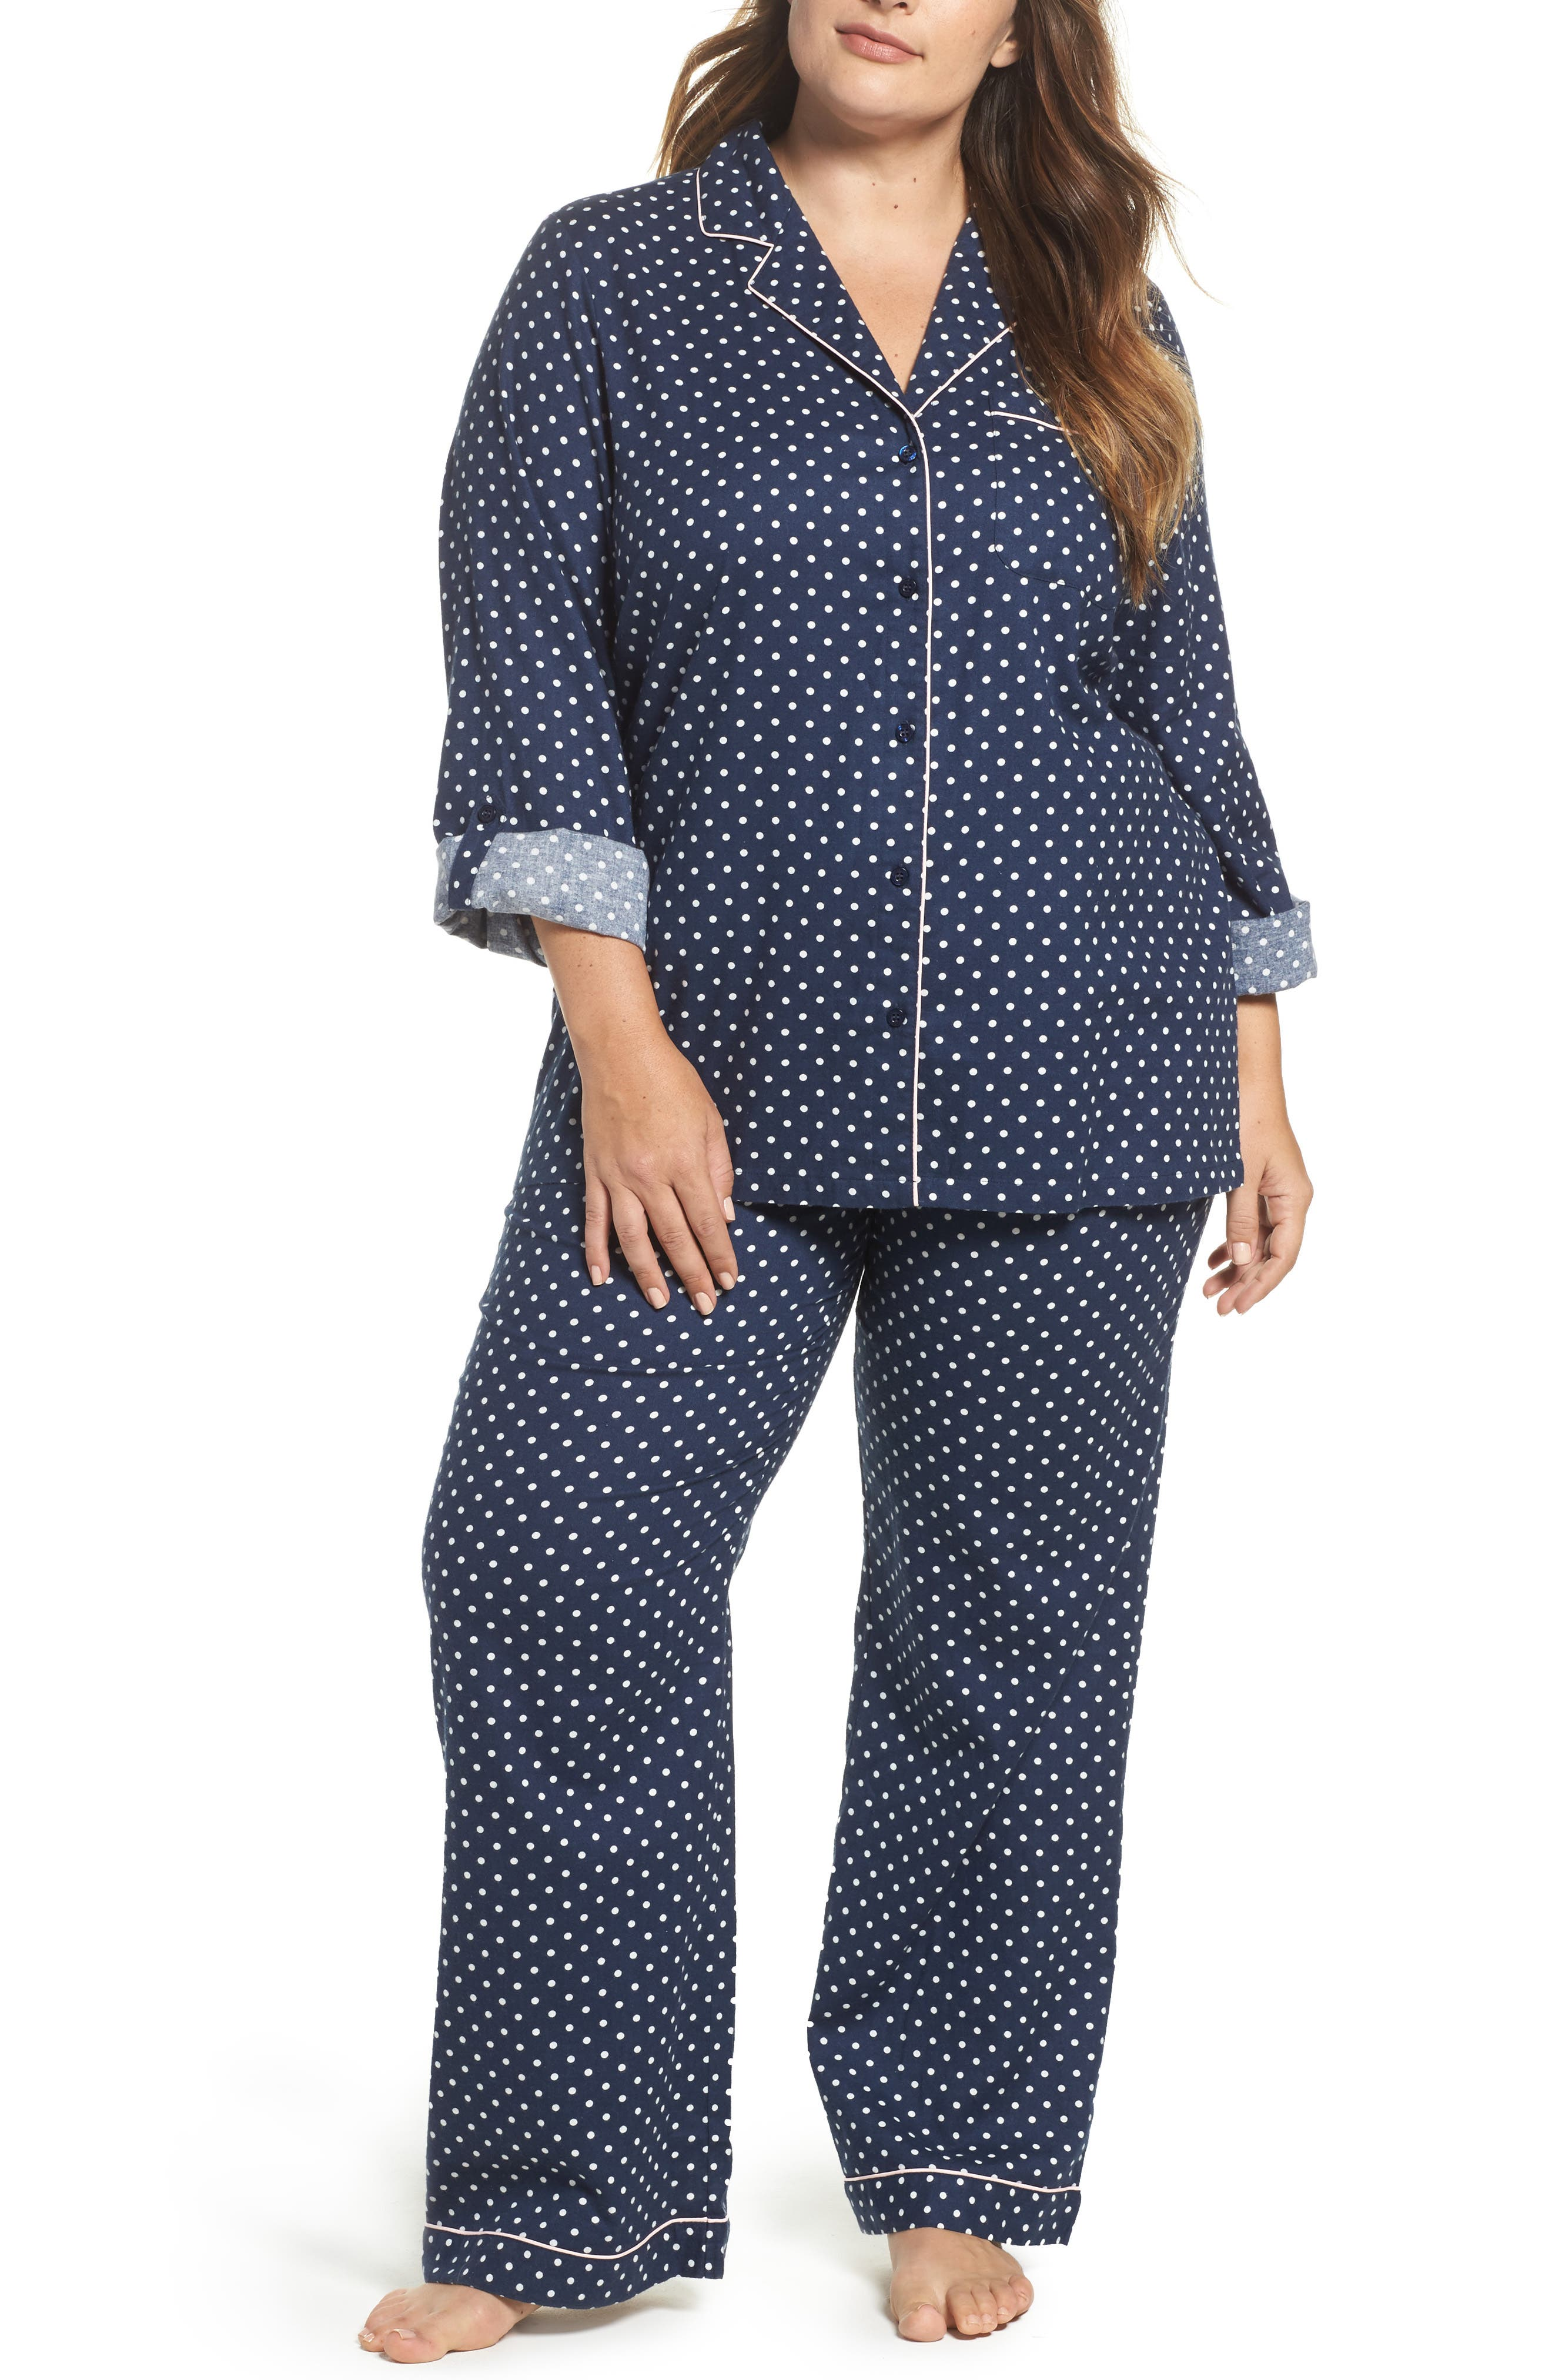 Cotton Twill Pajamas,                             Main thumbnail 1, color,                             414